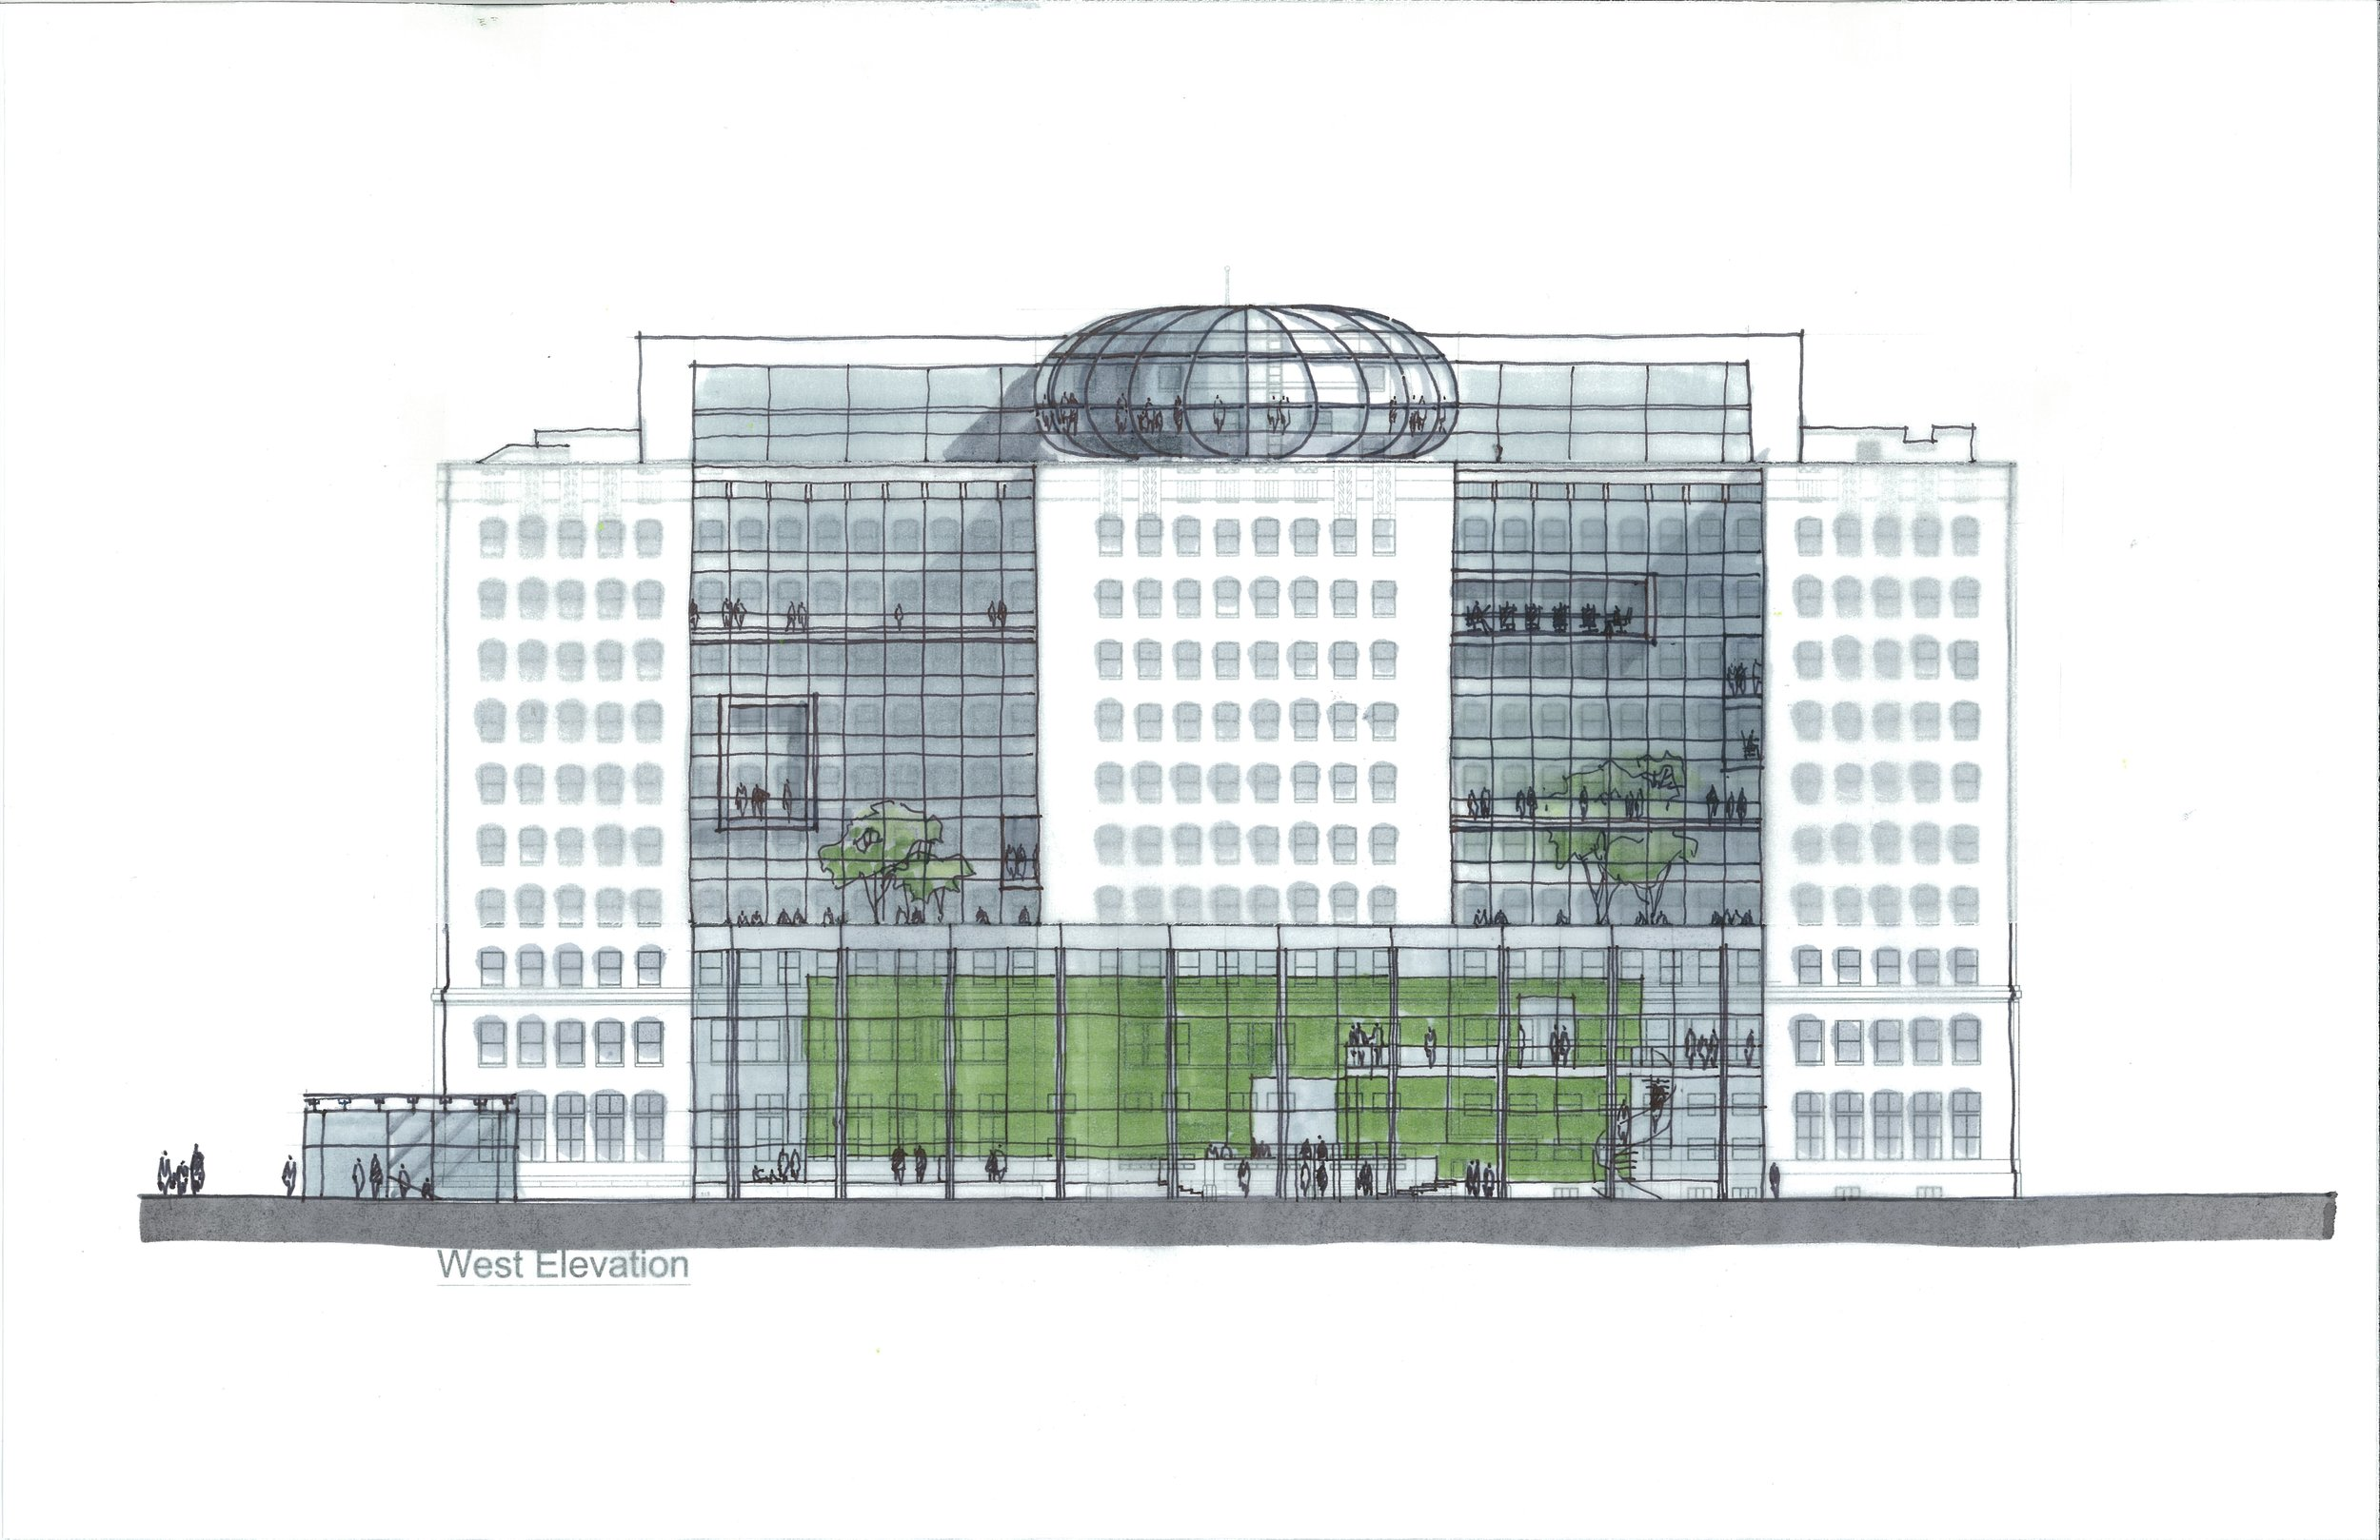 Federal Building West Entrance Pavilion and Atria Study-sketch by Dong An